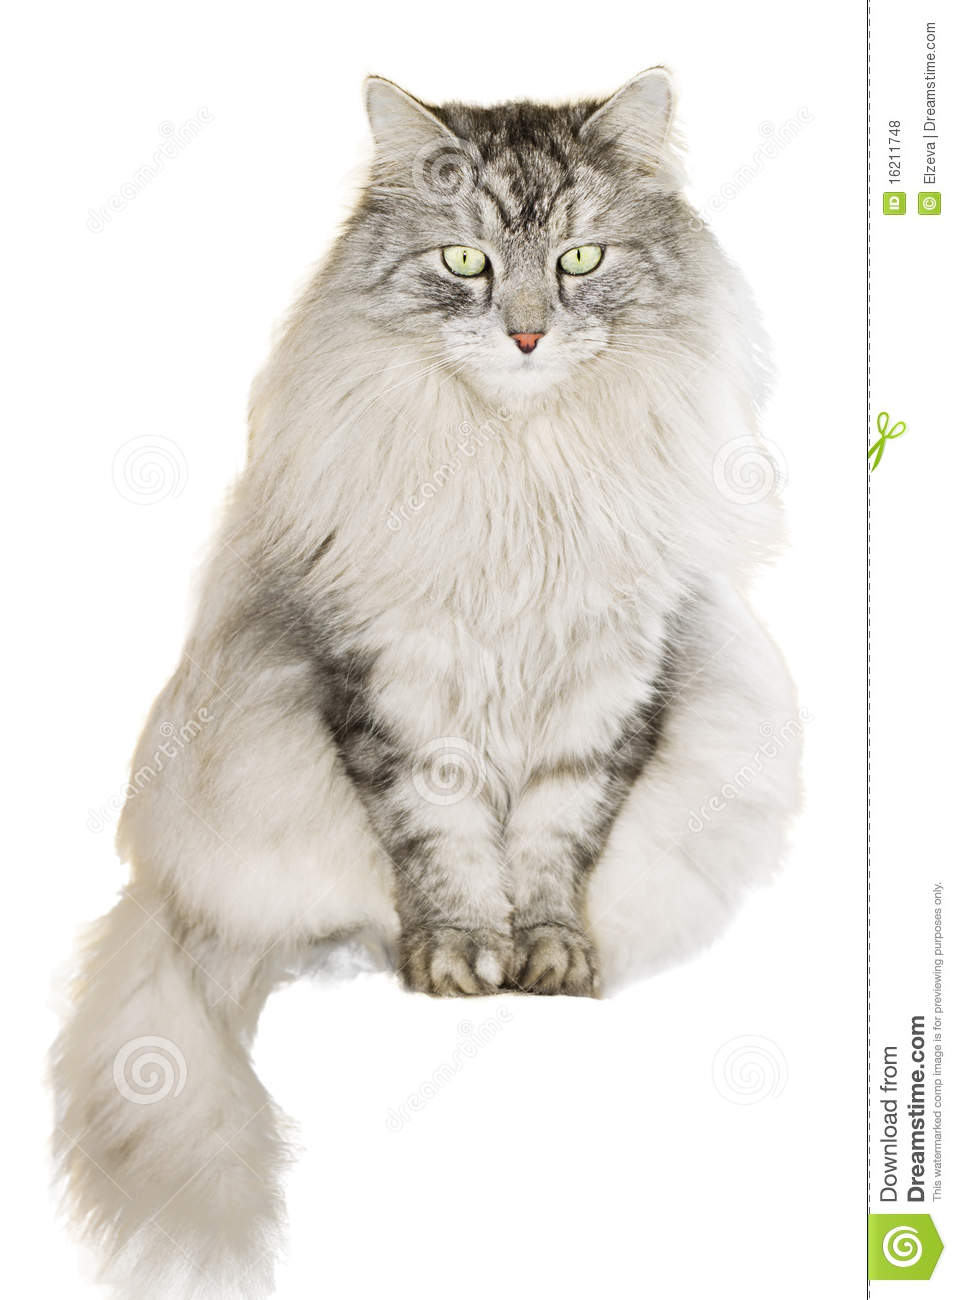 Gray siberian cat on white background